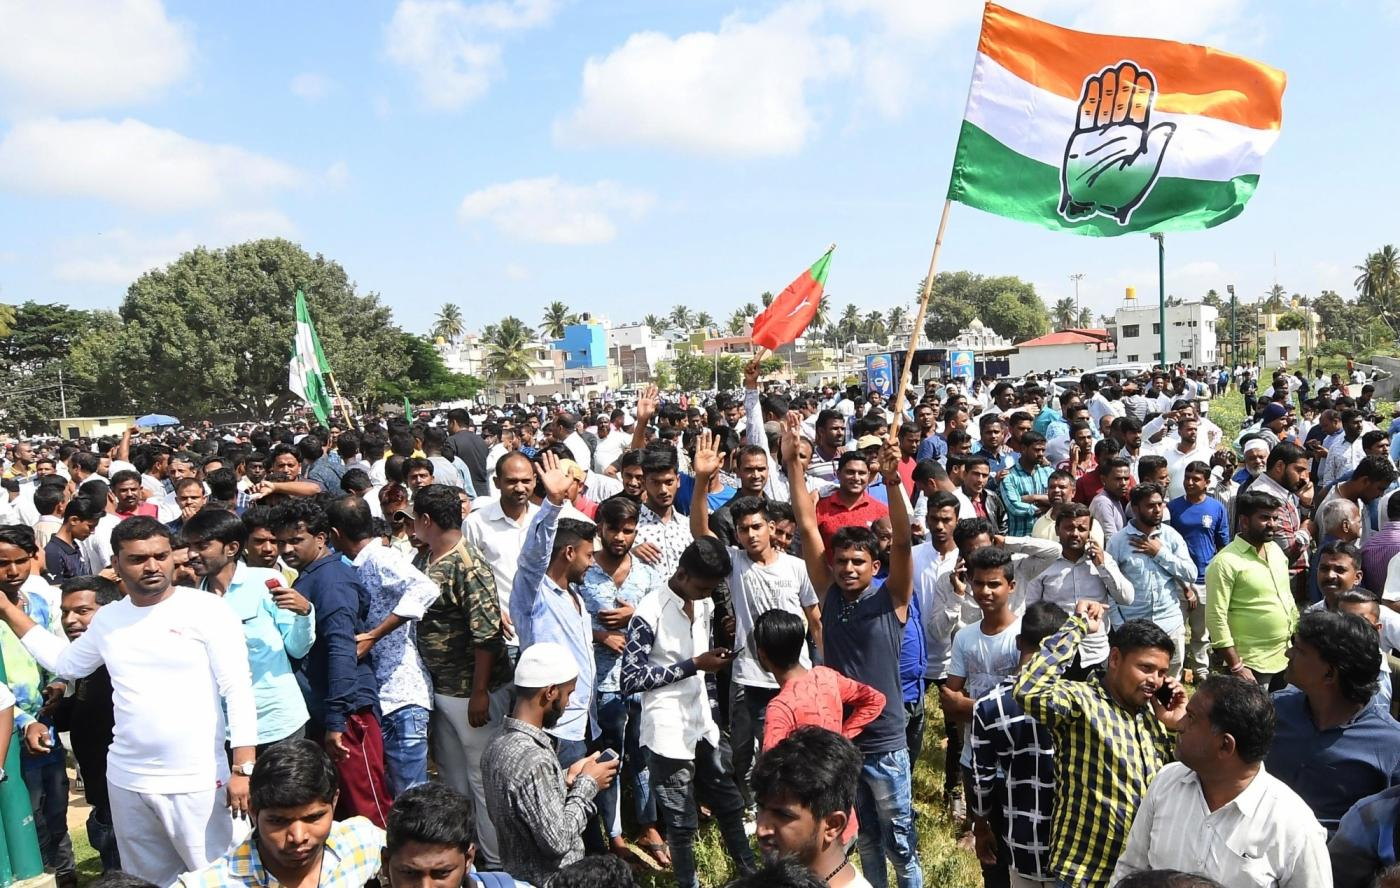 Mysuru: Congress workers celebrate the party's performance in the polls conducted for 105 Urban Local Bodies (ULBs) across Karnataka, outside a counting center in Mysuru on Sept 3, 2018. (Photo: IANS) by .